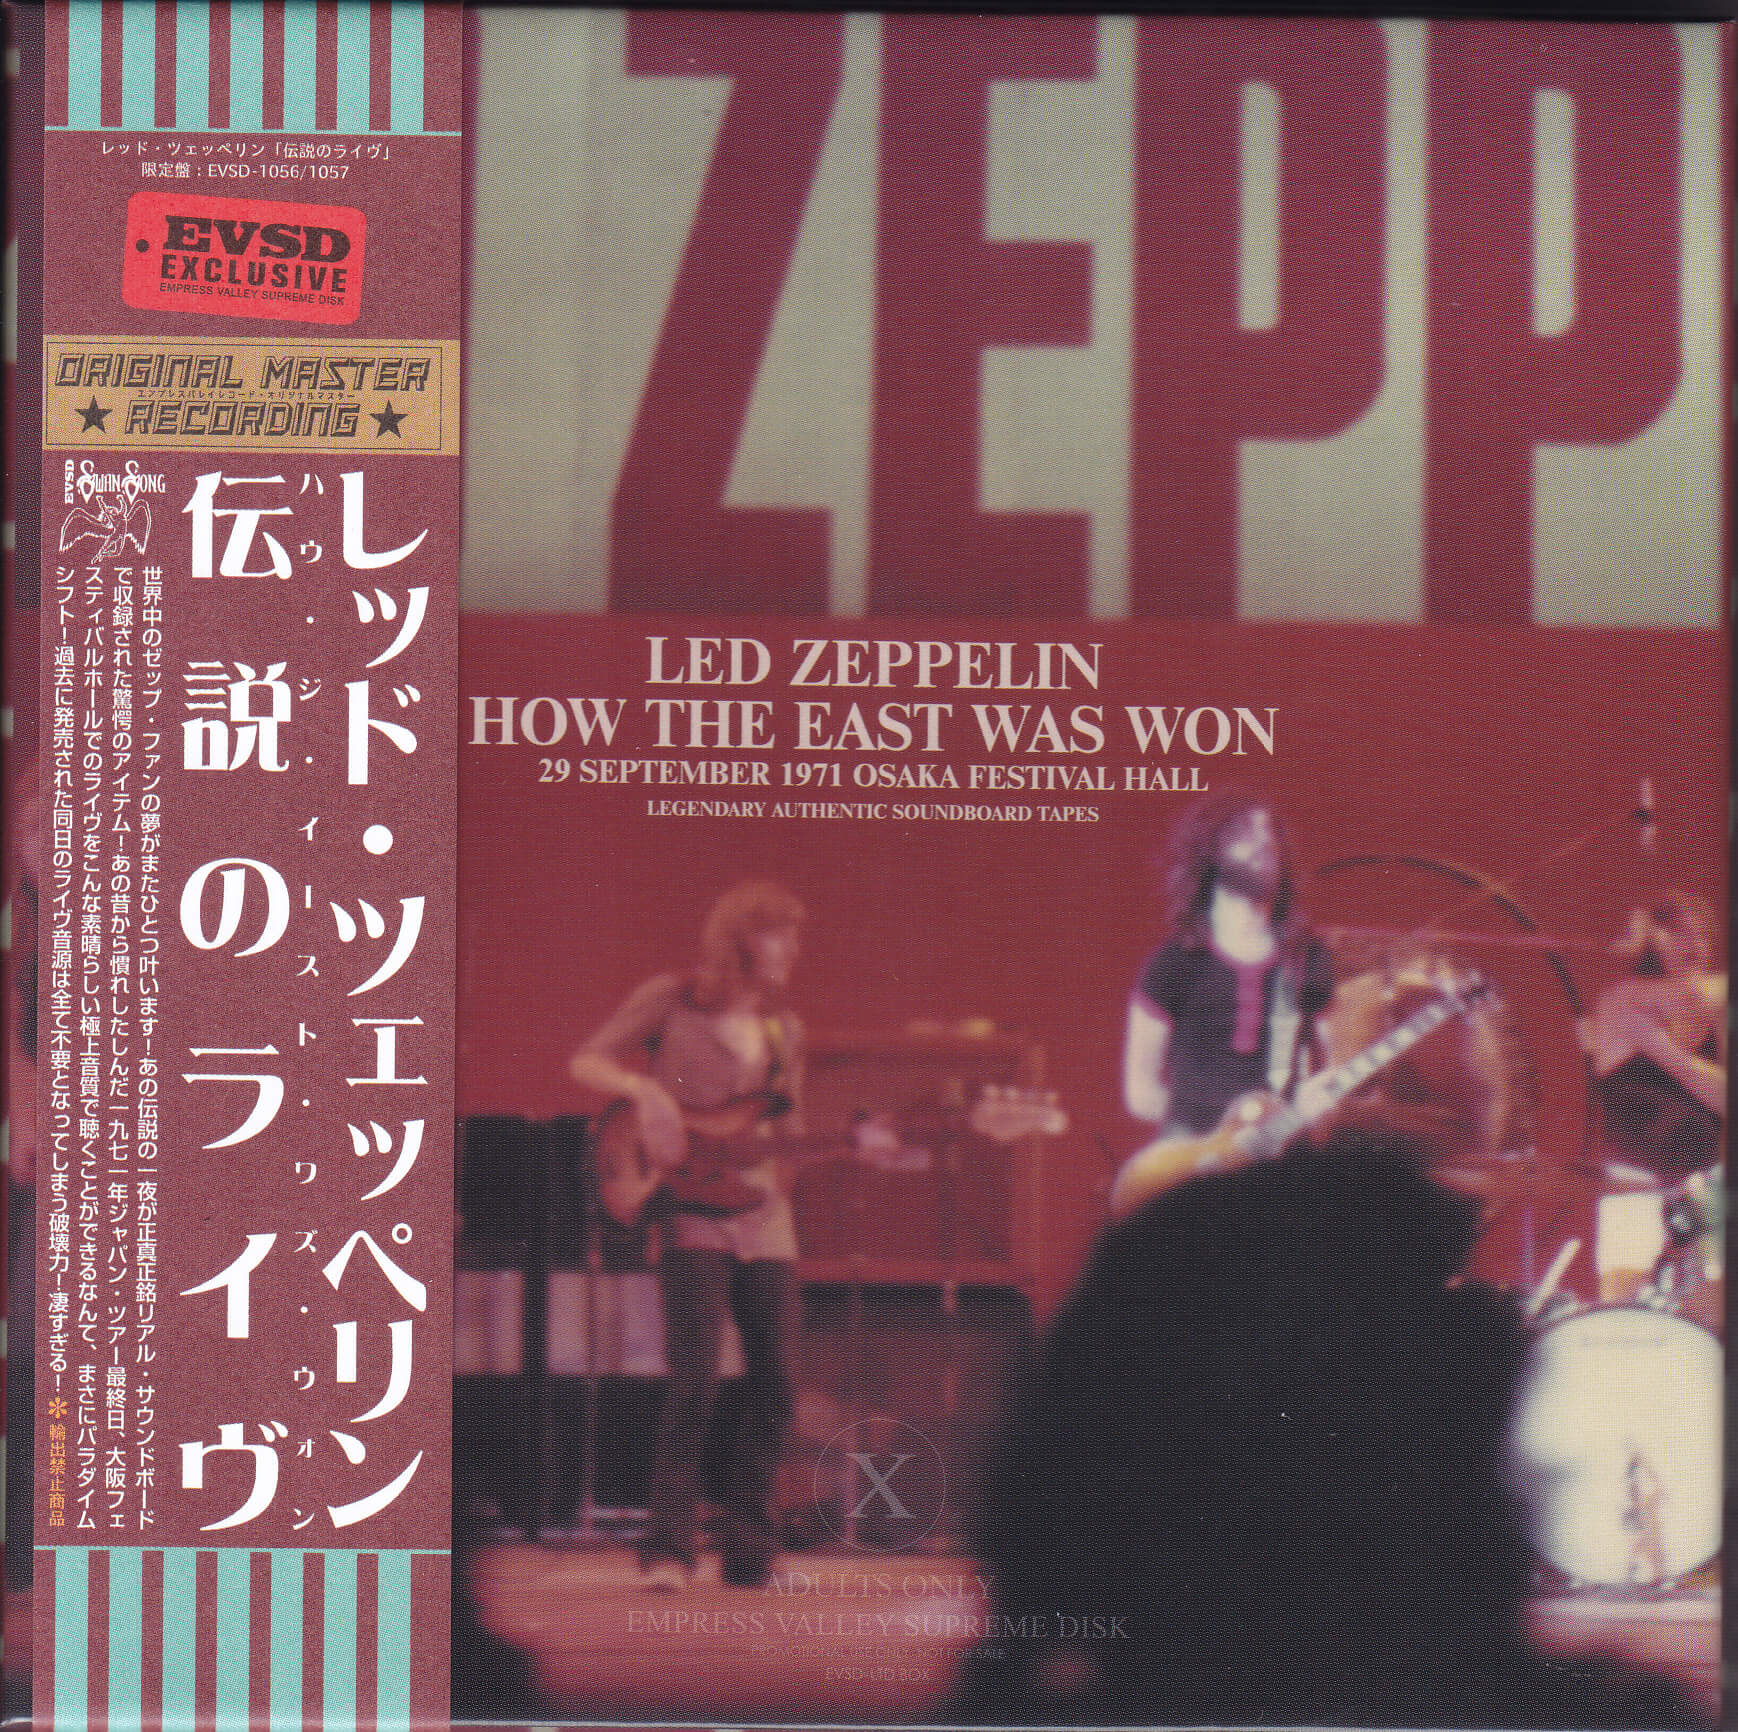 Led Zeppelin - How The East Was Won ( 2CD Box Set ) Empress Valley   EVSD-1056/1057